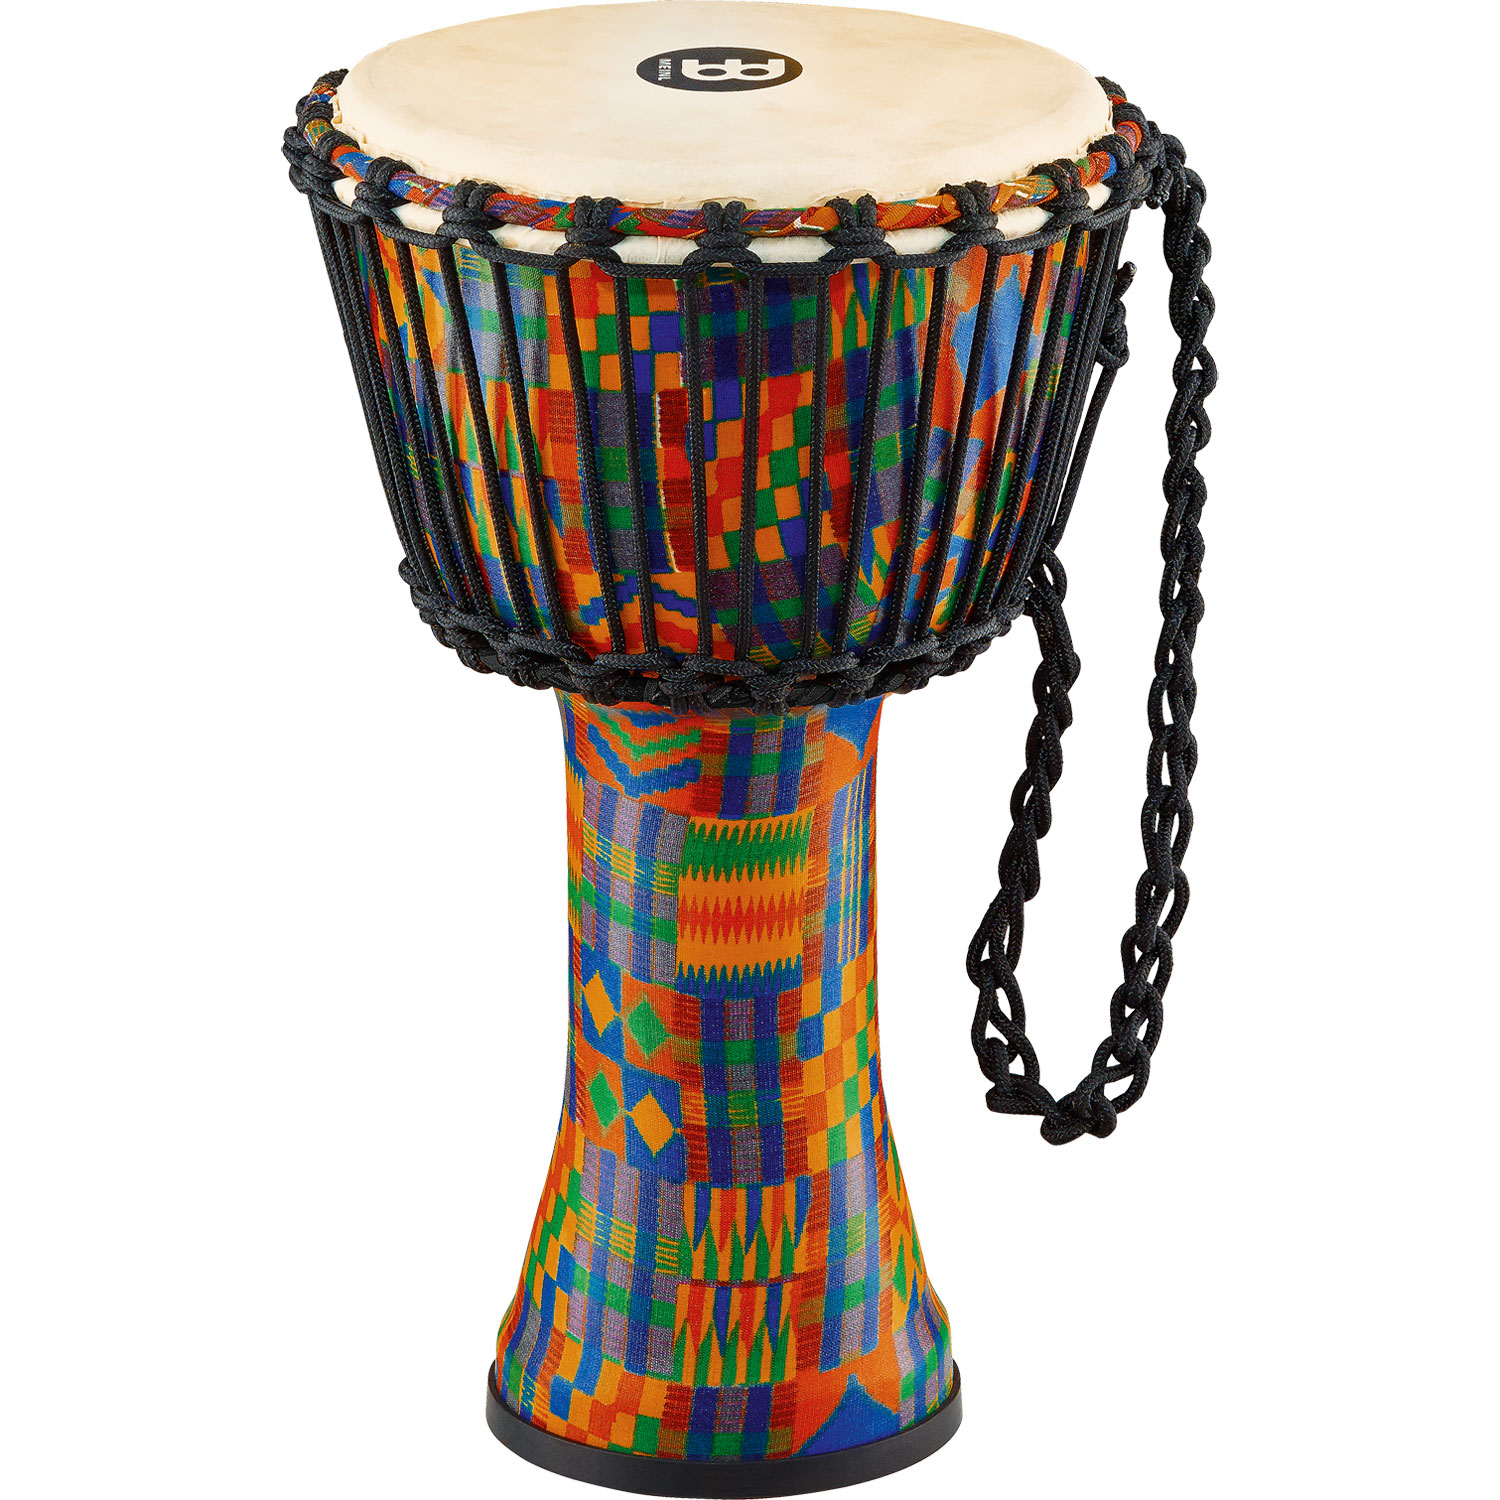 "Meinl 12"" Rope-Tuned Travel Djembe in Kenyan Quilt with Natural Head"